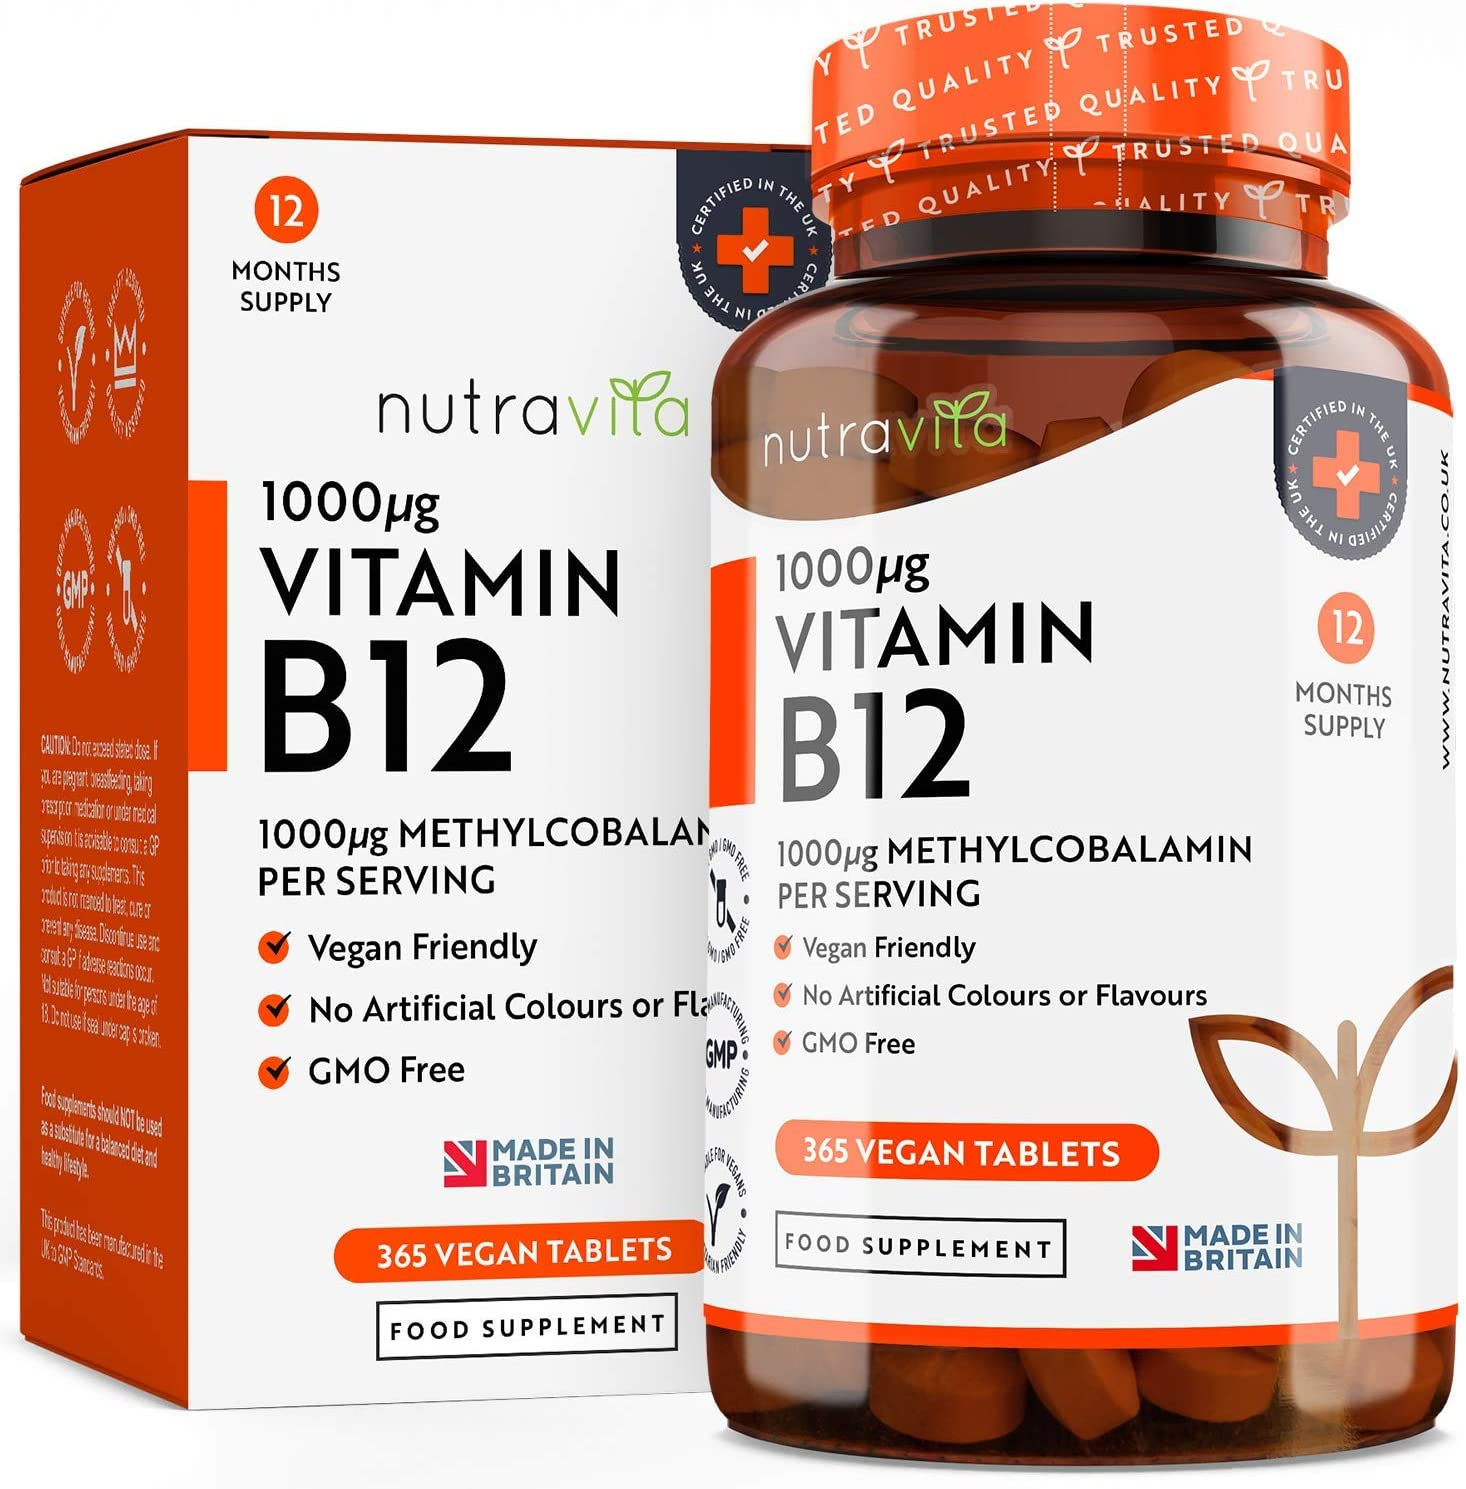 b12 is what vitamin